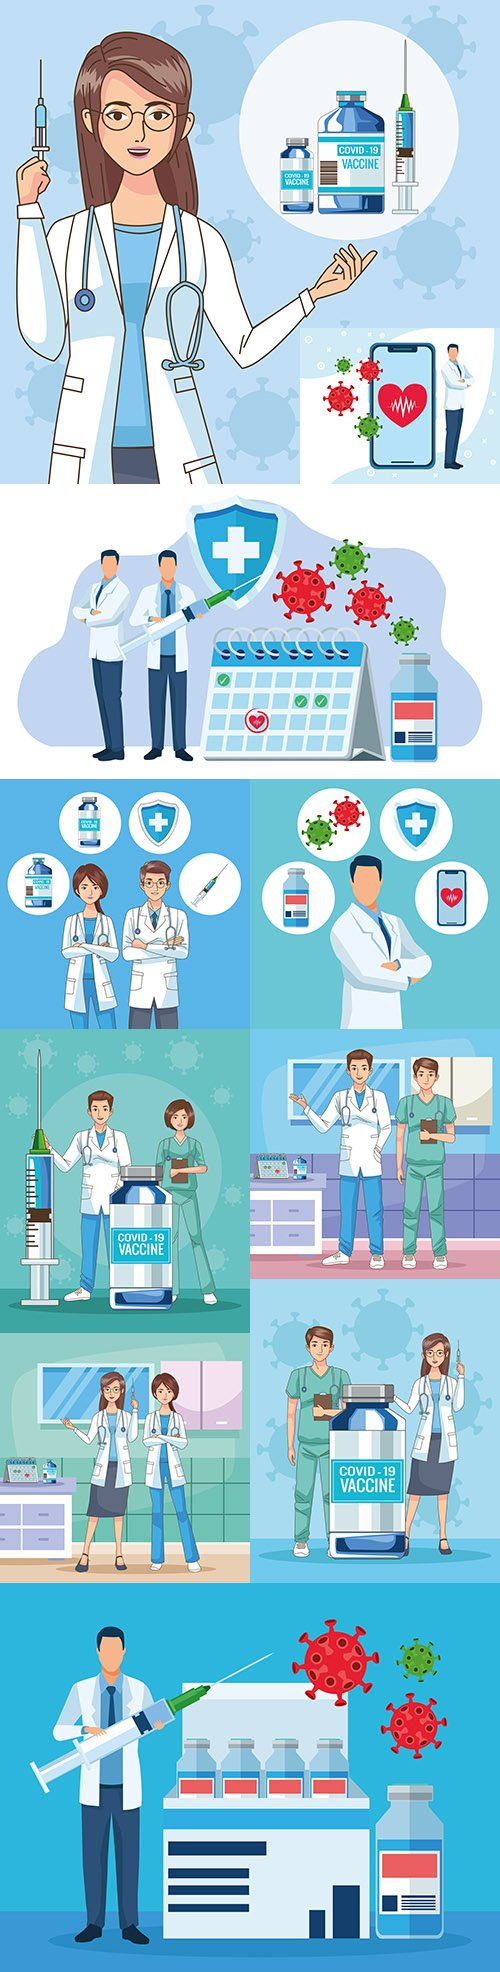 Doctors characters with vaccine illustration scene in hospital